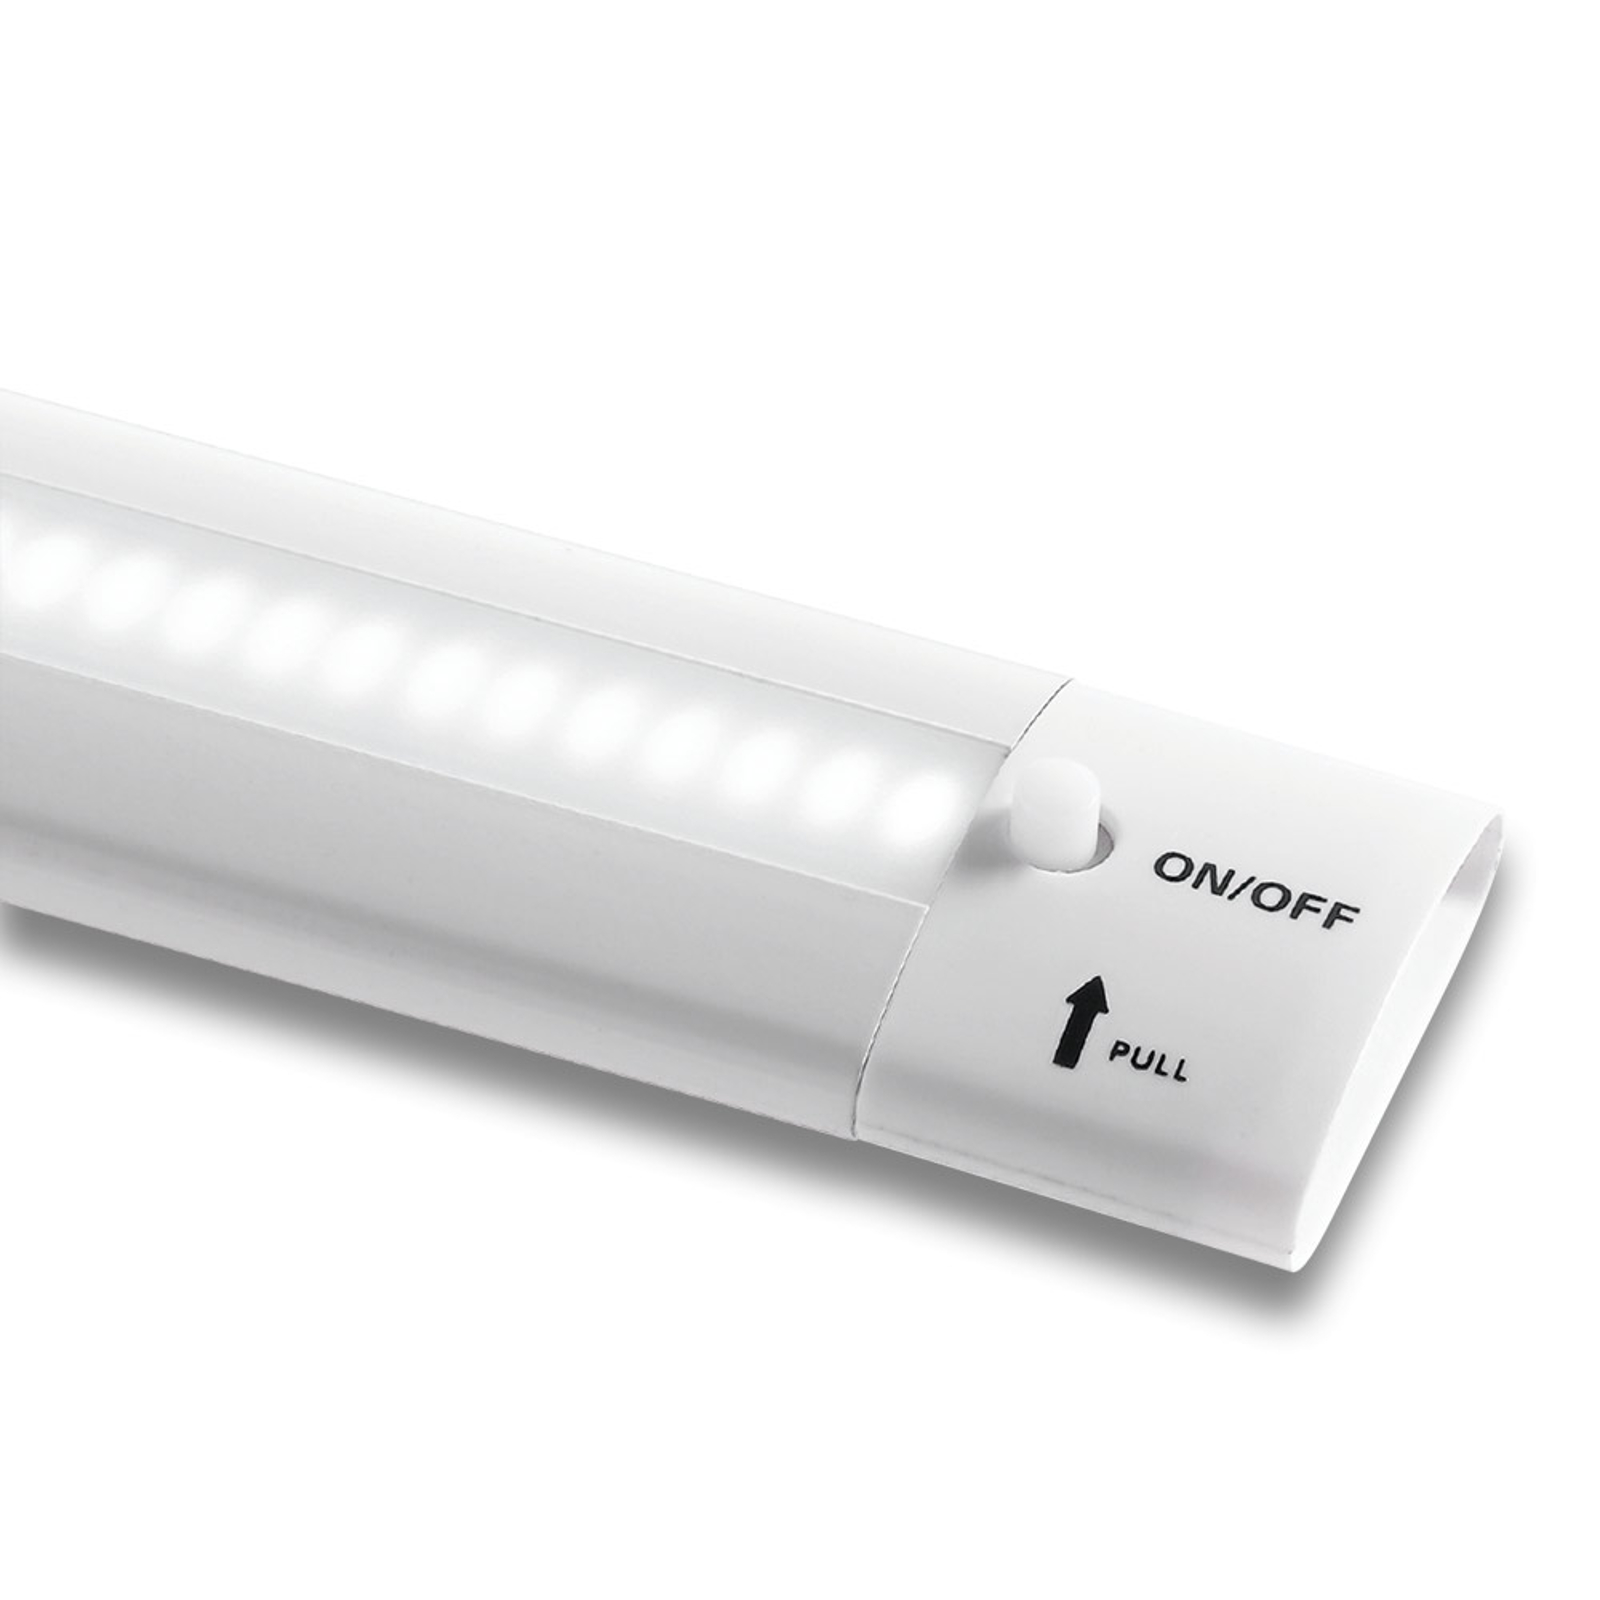 LED 5W meubelonderbouwlamp Galway 6690, wit